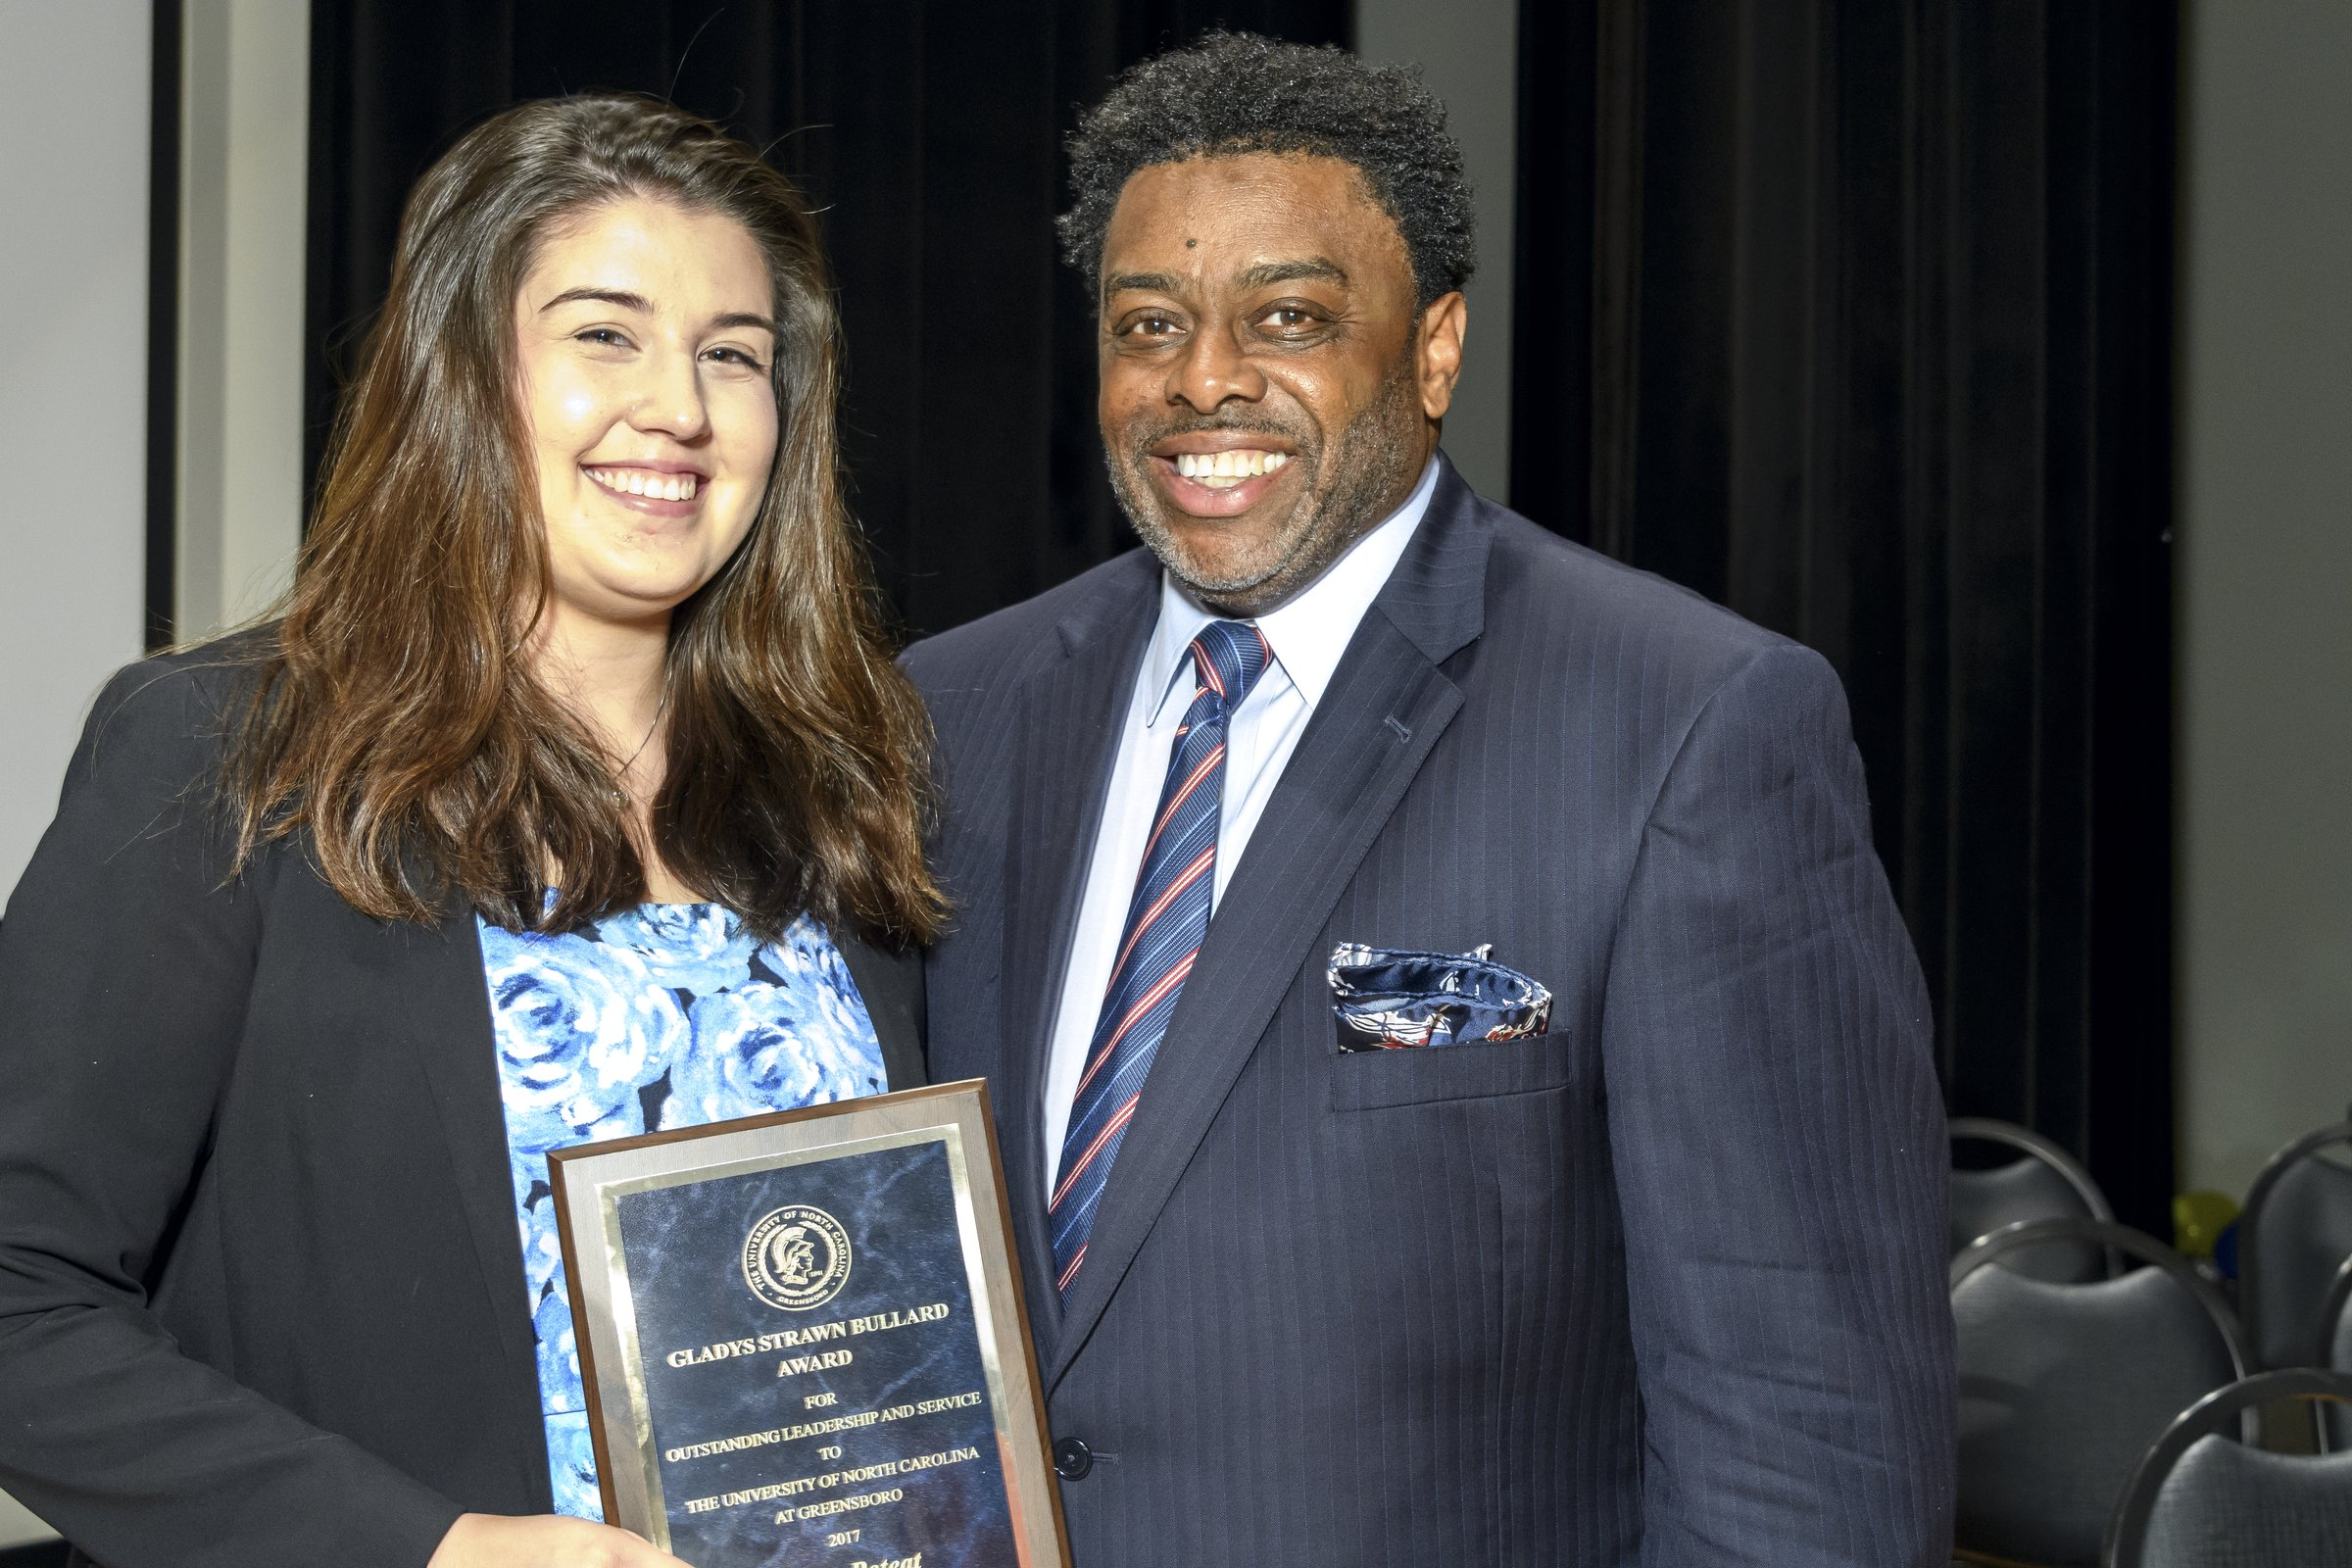 Photo of Chancellor presenting award to a female